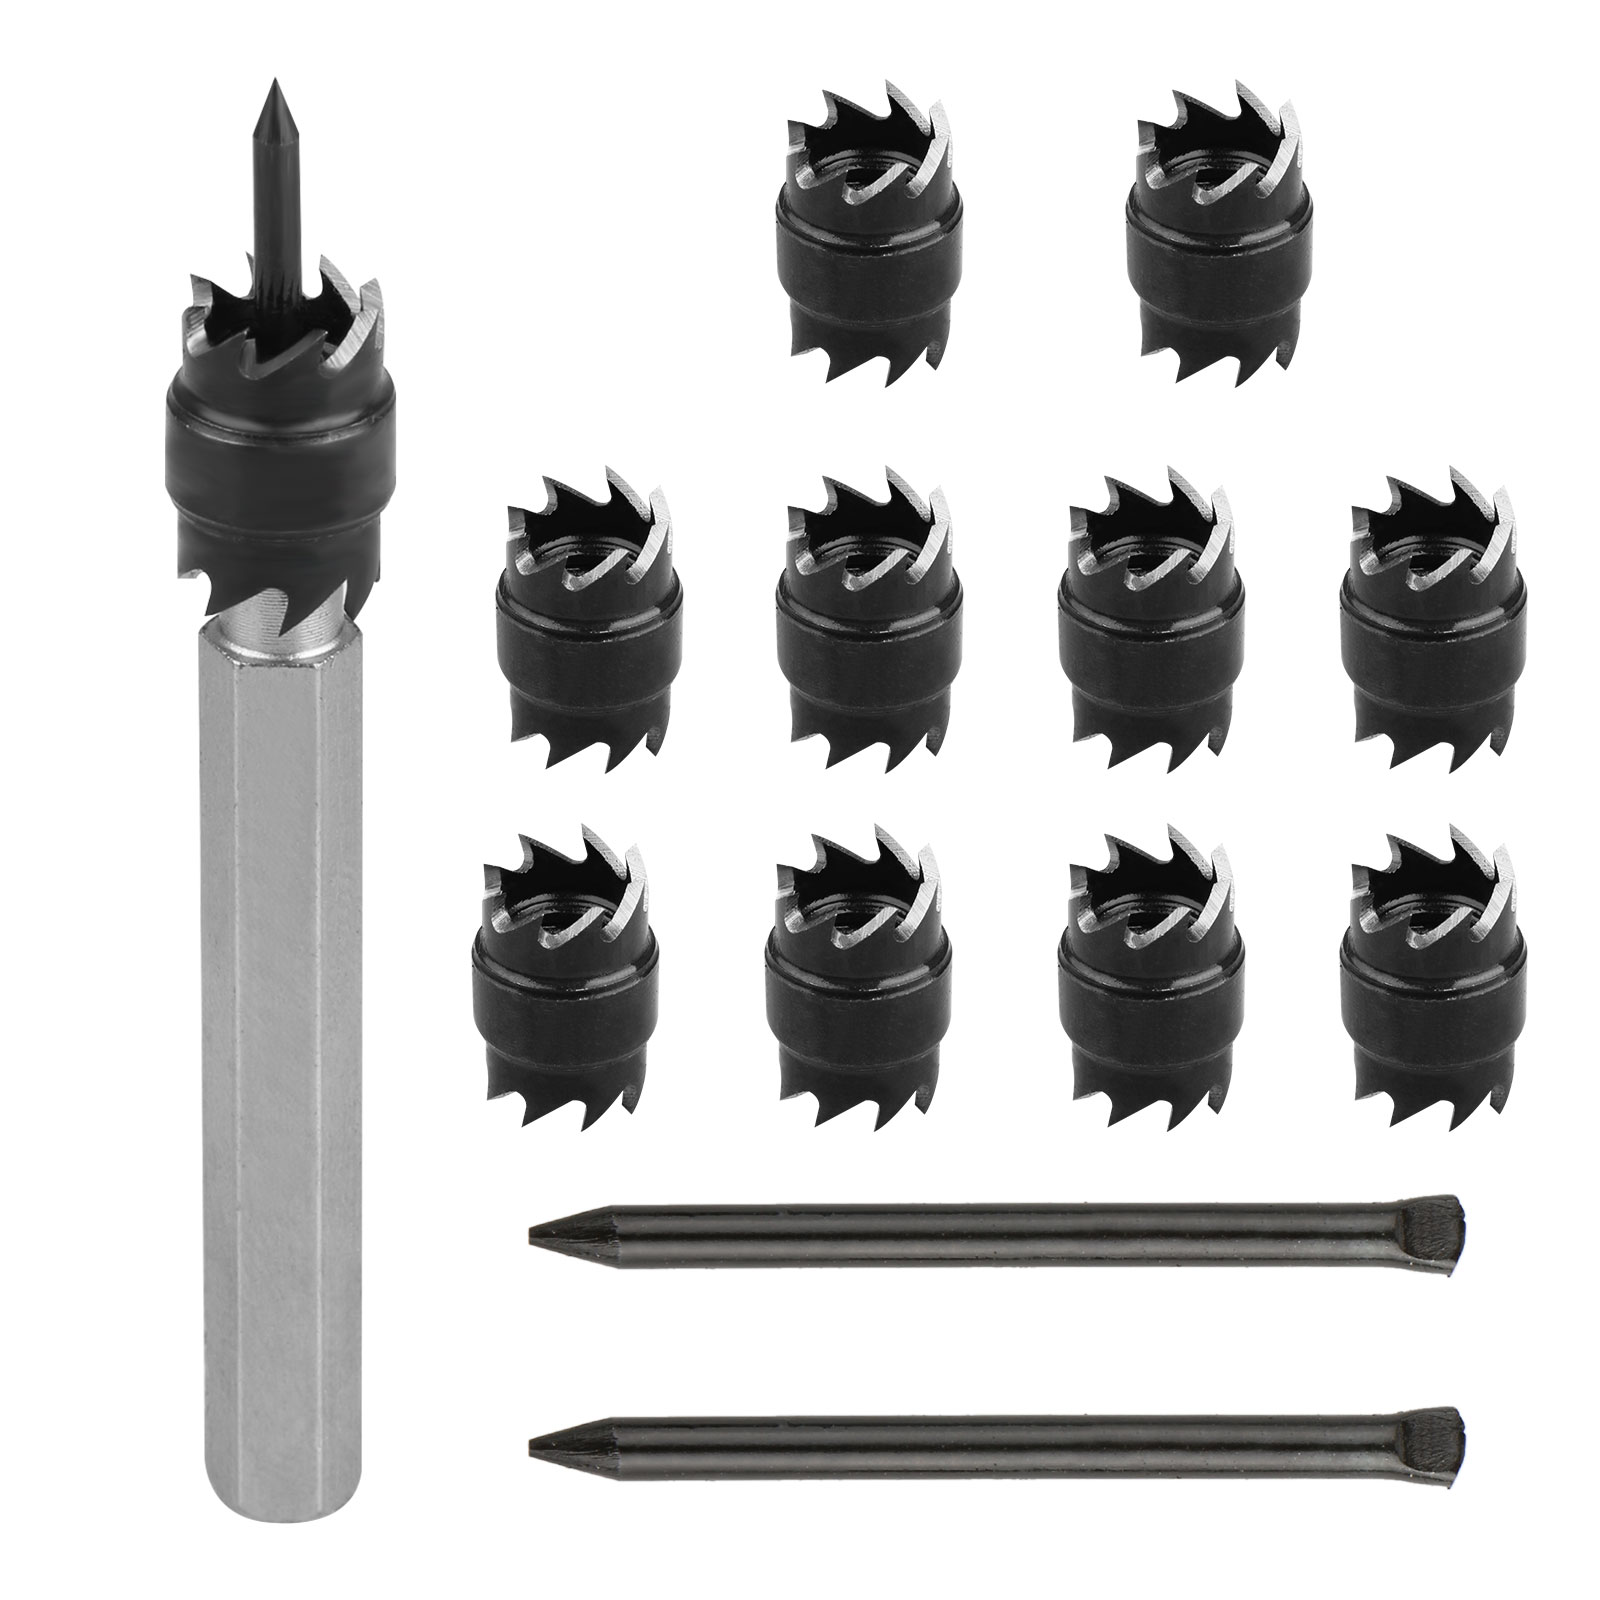 13-pack Double Sided 3/8inch Spot Weld Cutter Rotary Blade and Hex Shank Drill Bit Remover Welder Cut Tool